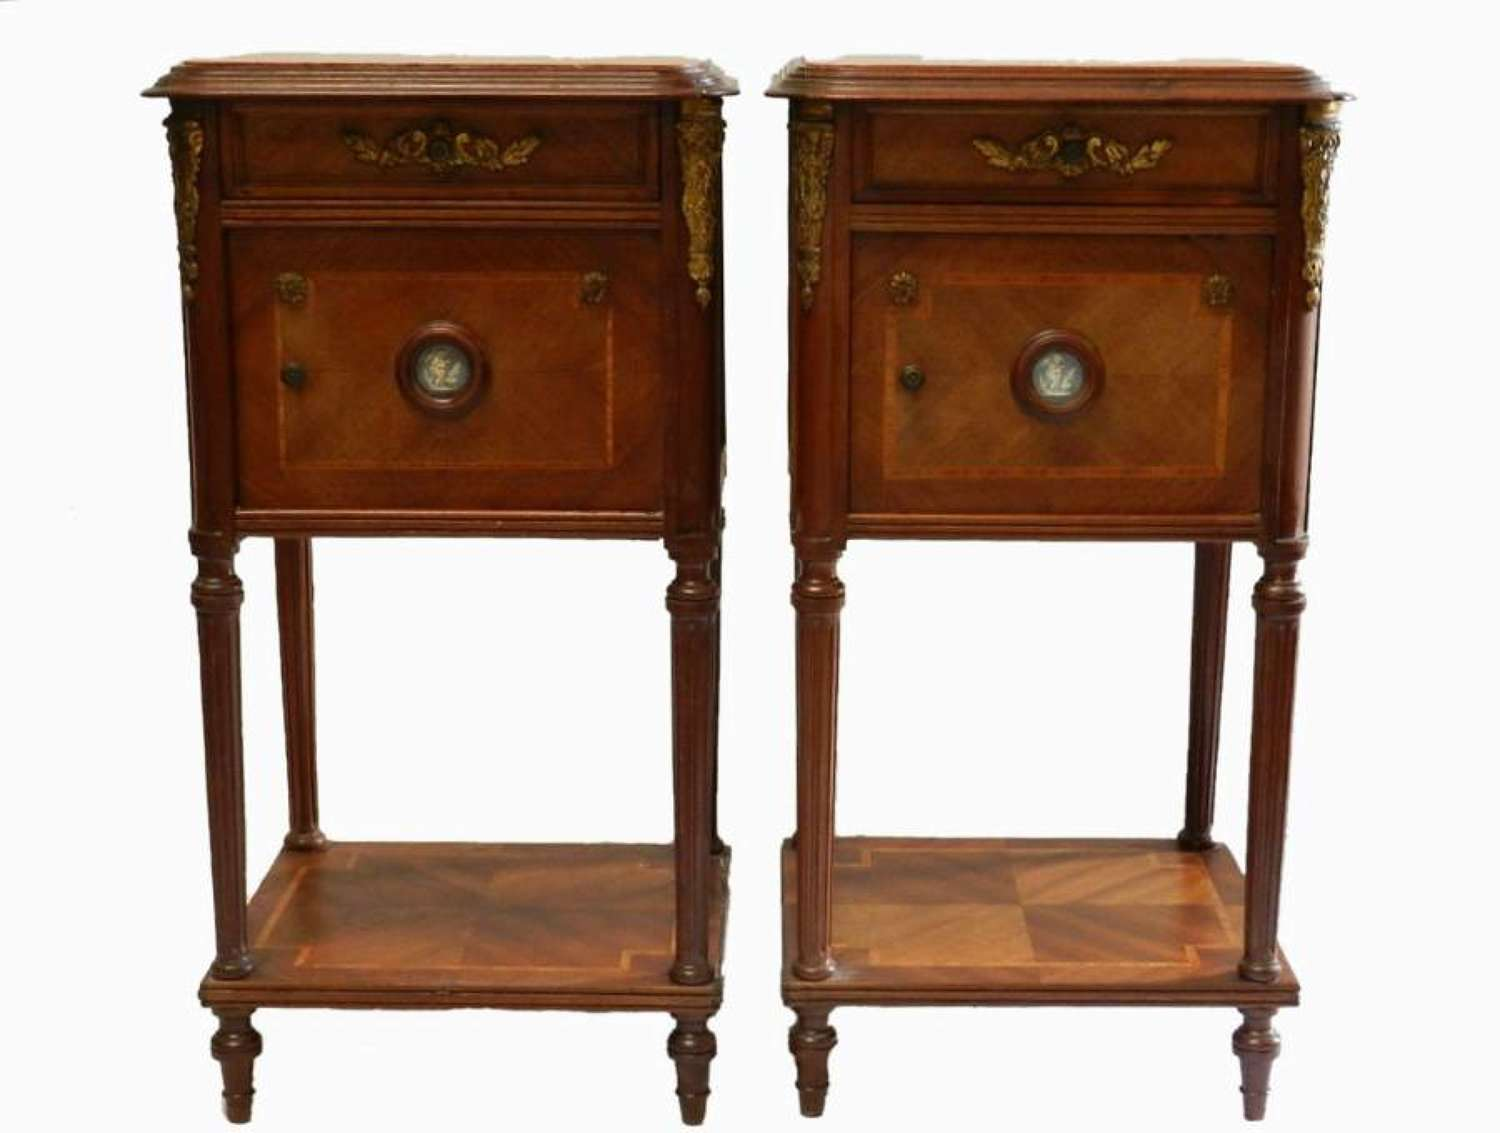 C19 Pair of French Side Cabinets Bedside Tables with Limoges plaques and Ormolu